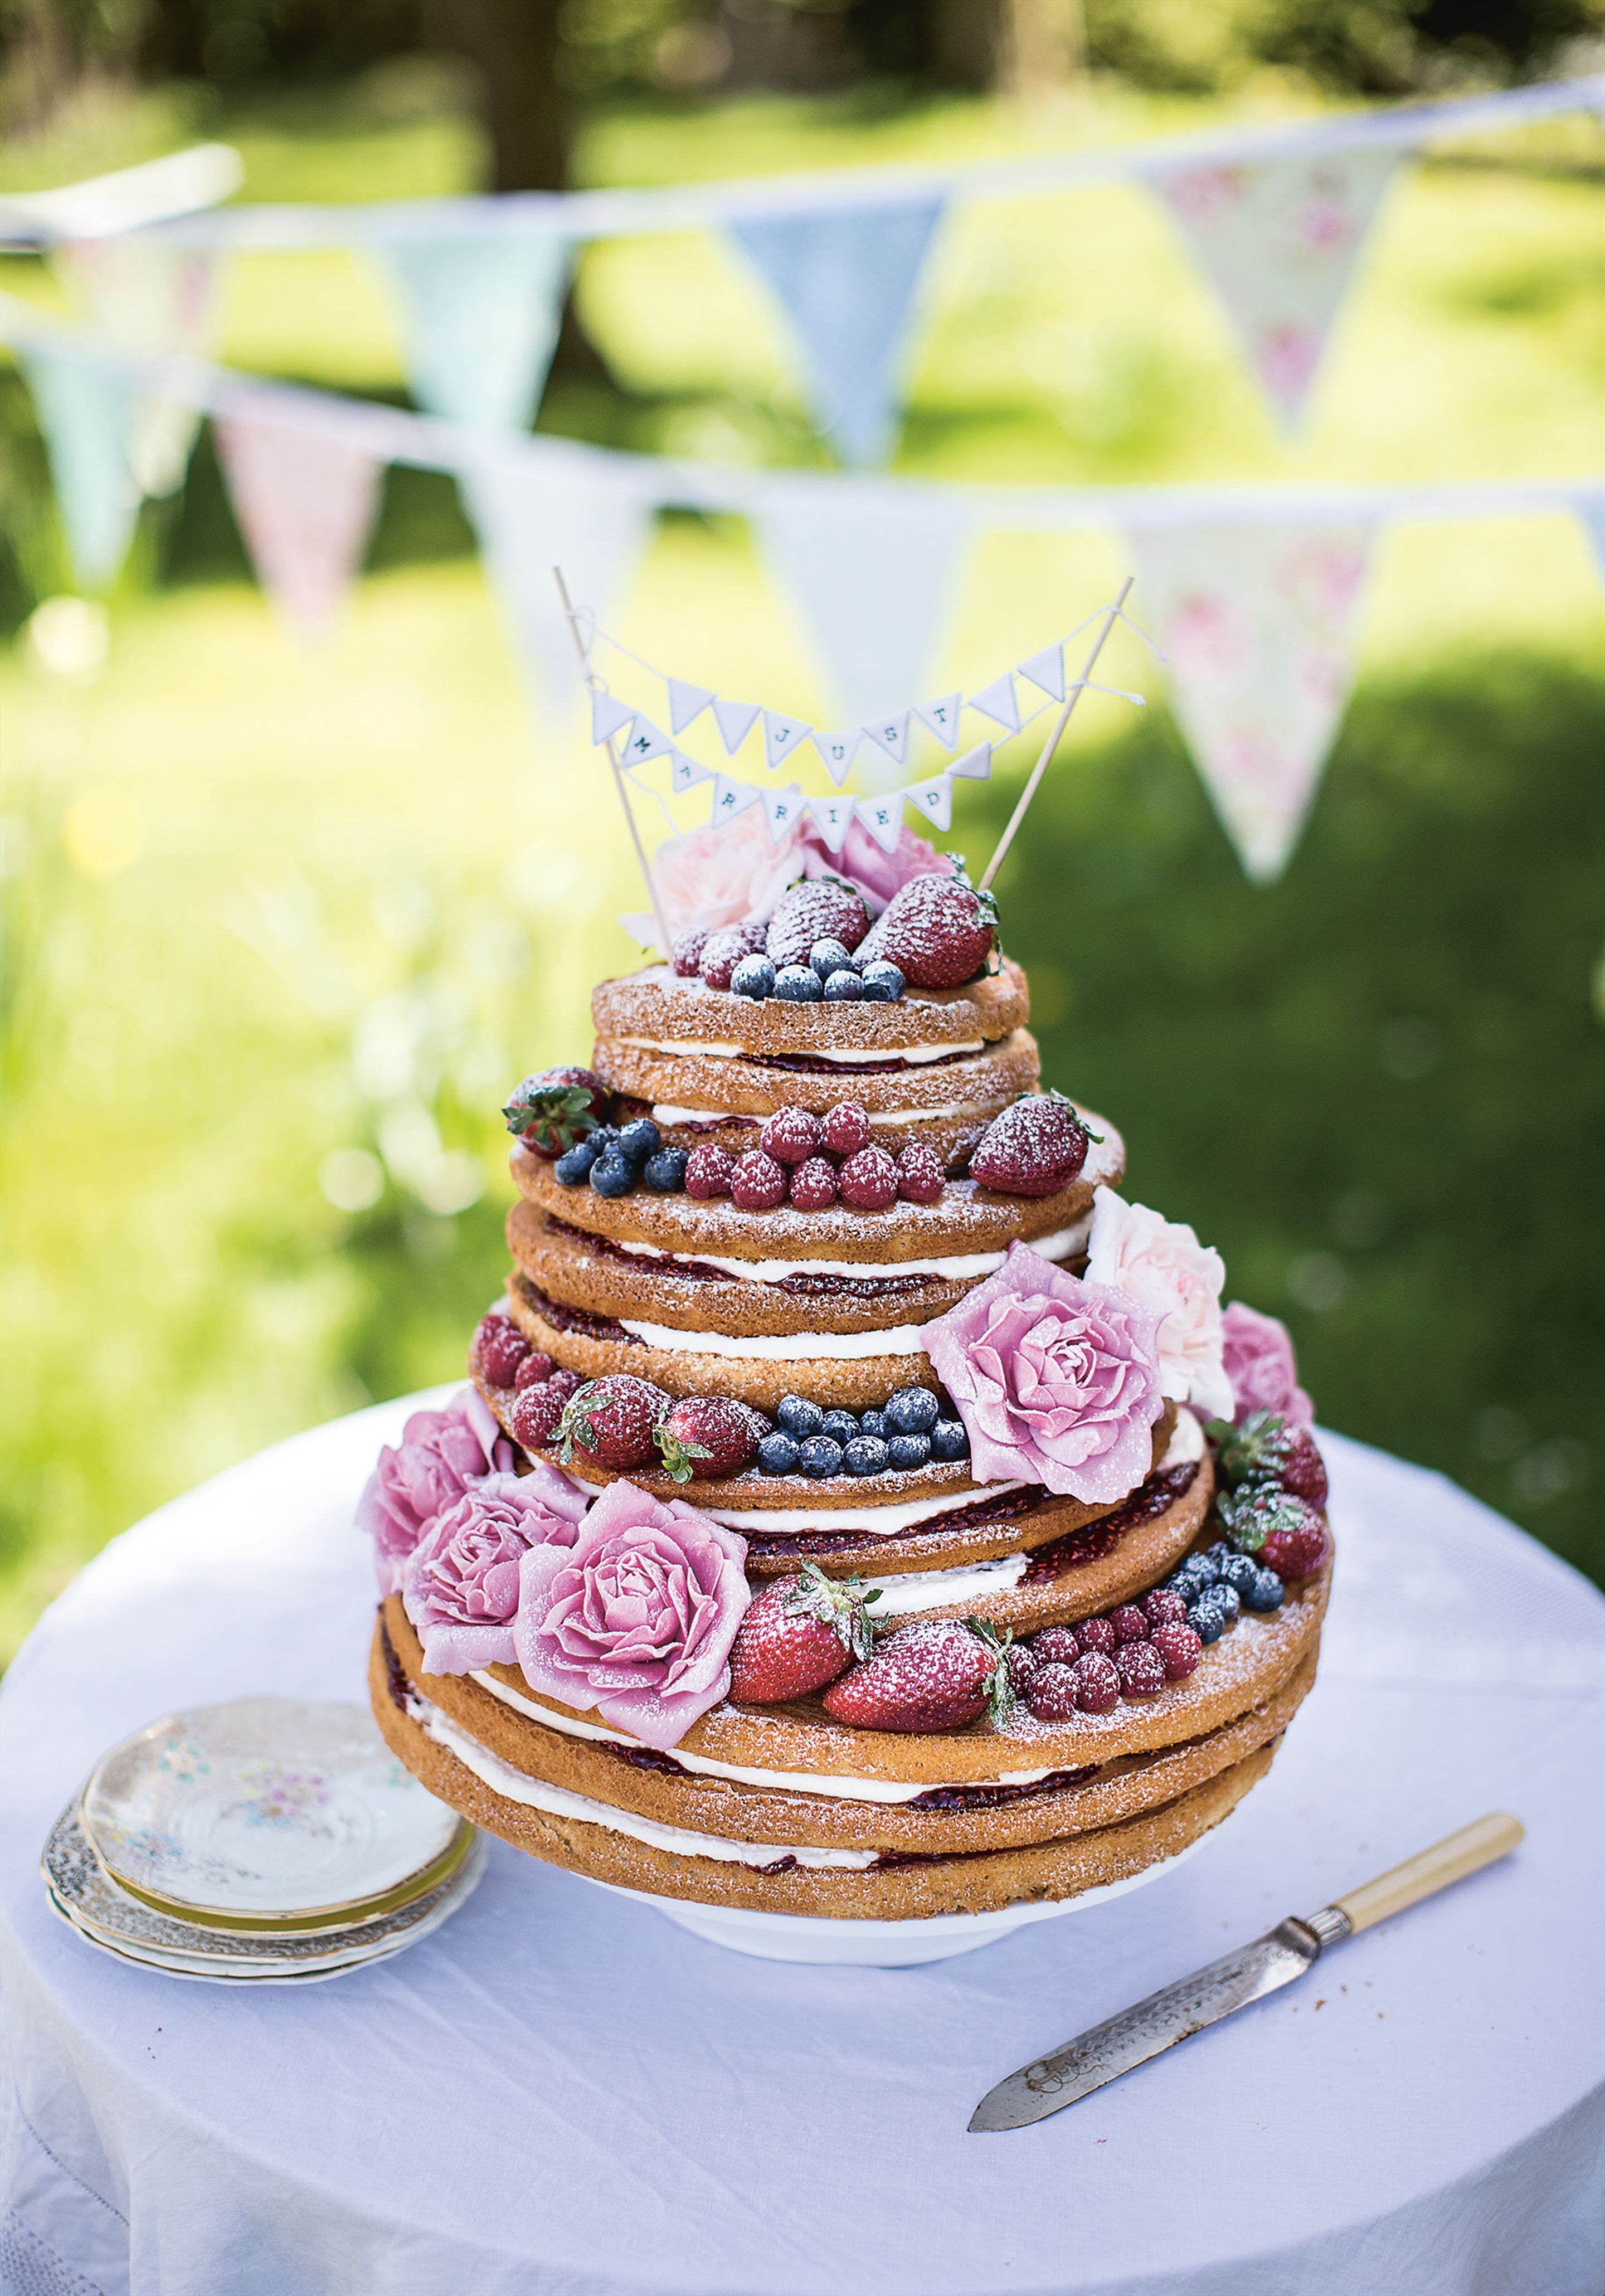 'Naked' Victoria sponge wedding cake